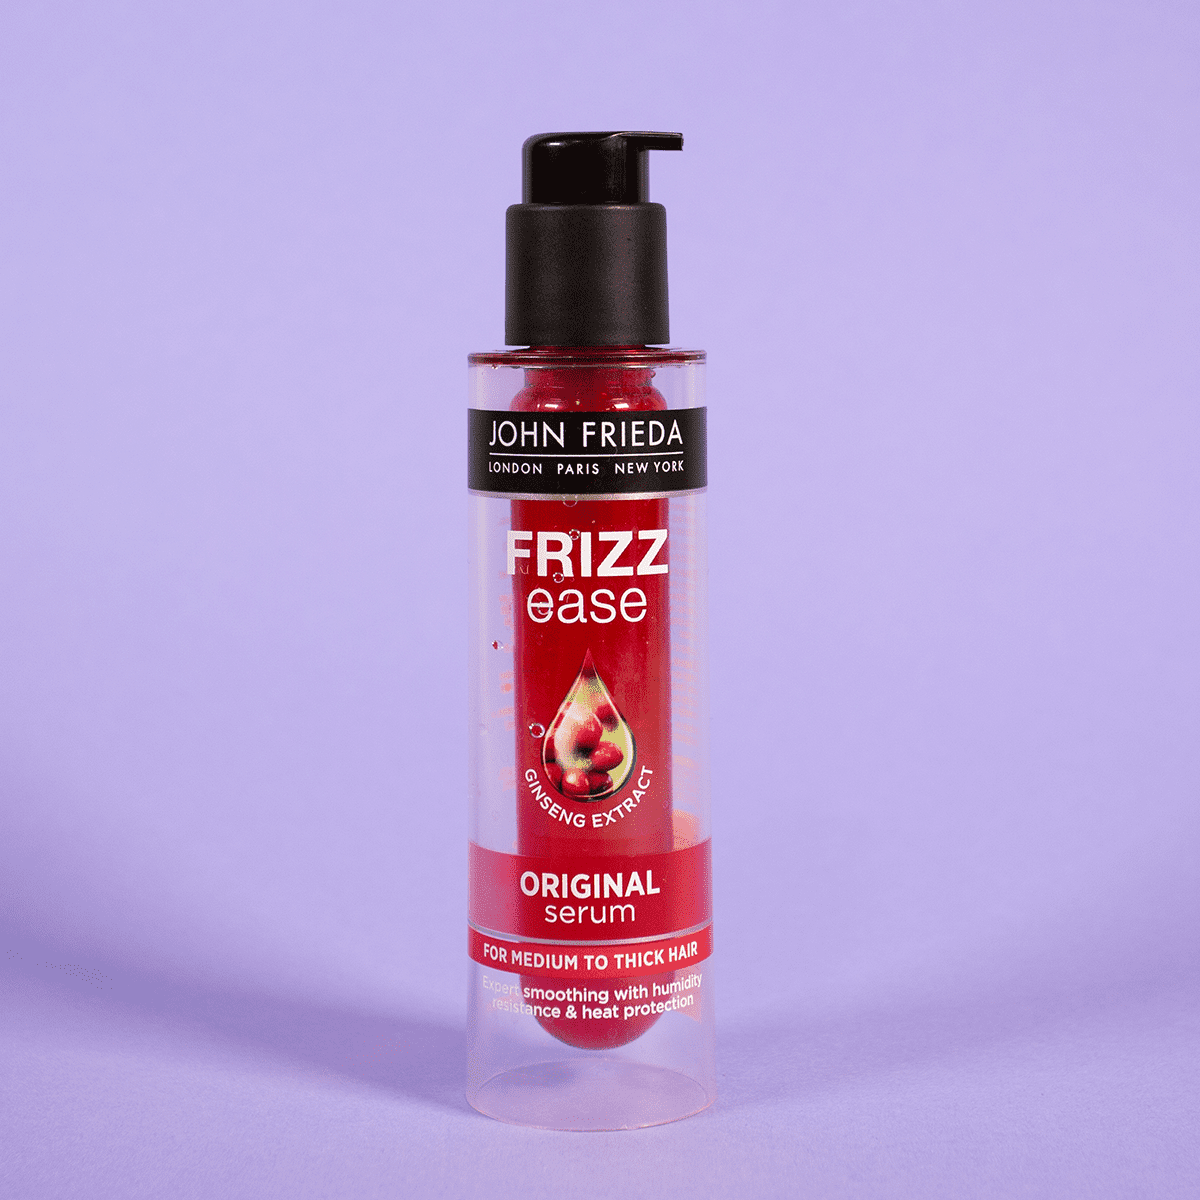 John Frieda Frizz Ease Original Serum for frizzy hair